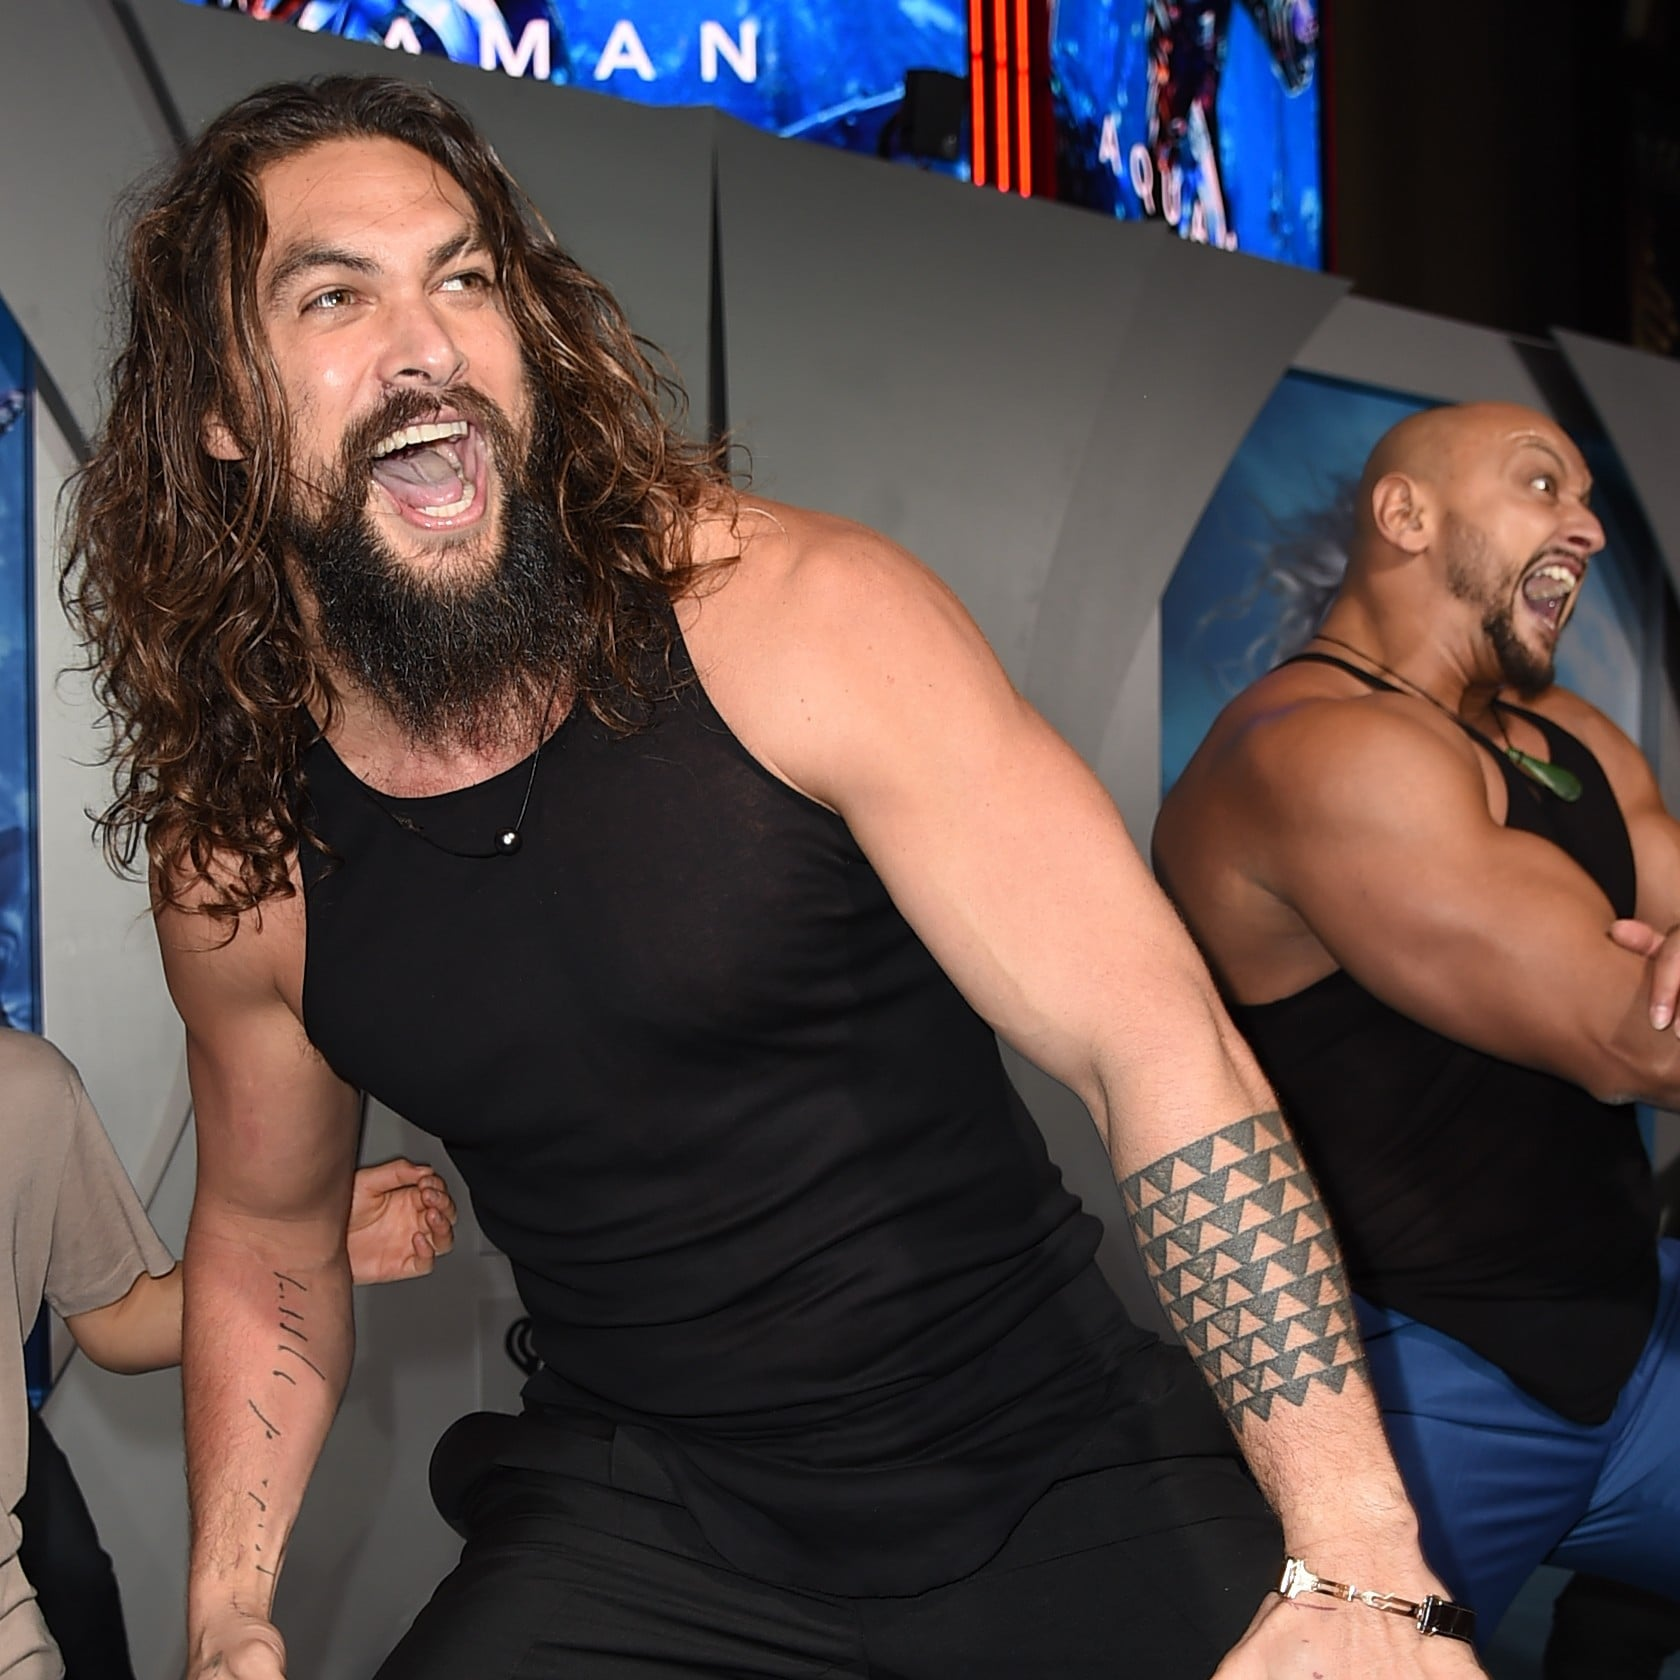 Jason Momoa Doing The Haka With His Kids At The Aquaman Premiere